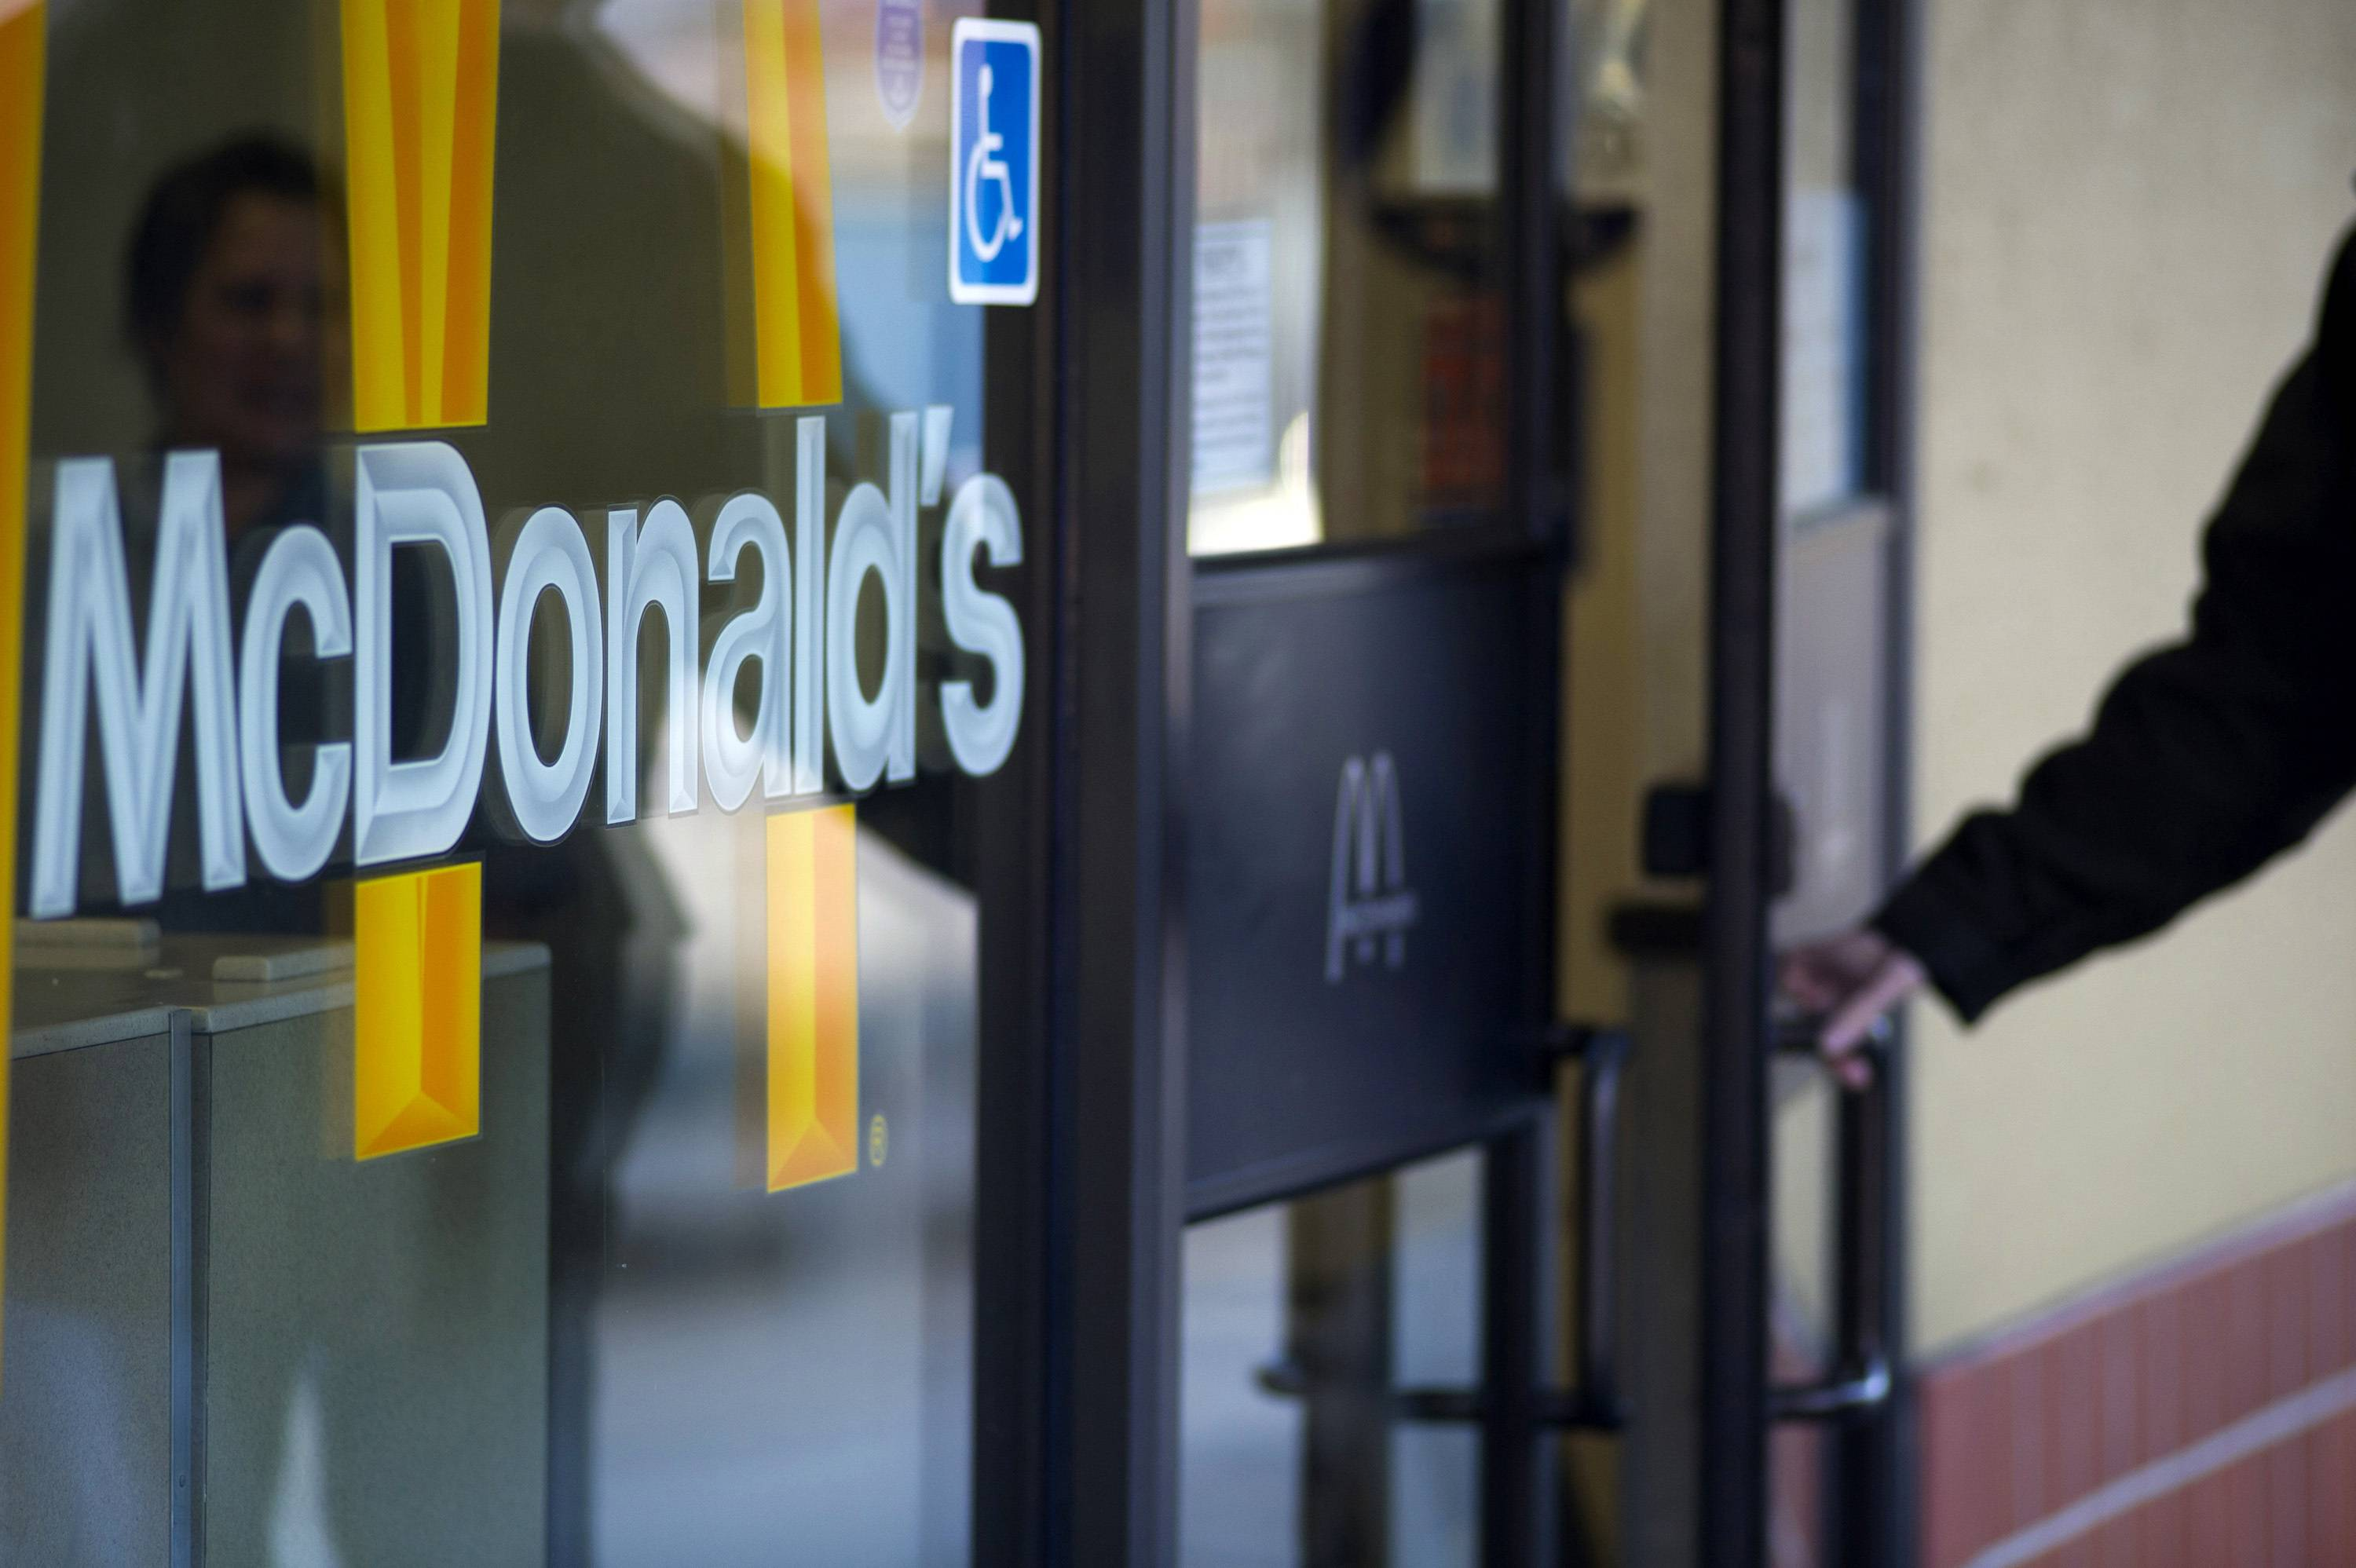 McDonald's says bad weather hurt its U.S. sales performance in January, representing another setback as the fast-food chain fights to fend off rivals and get its menu right.